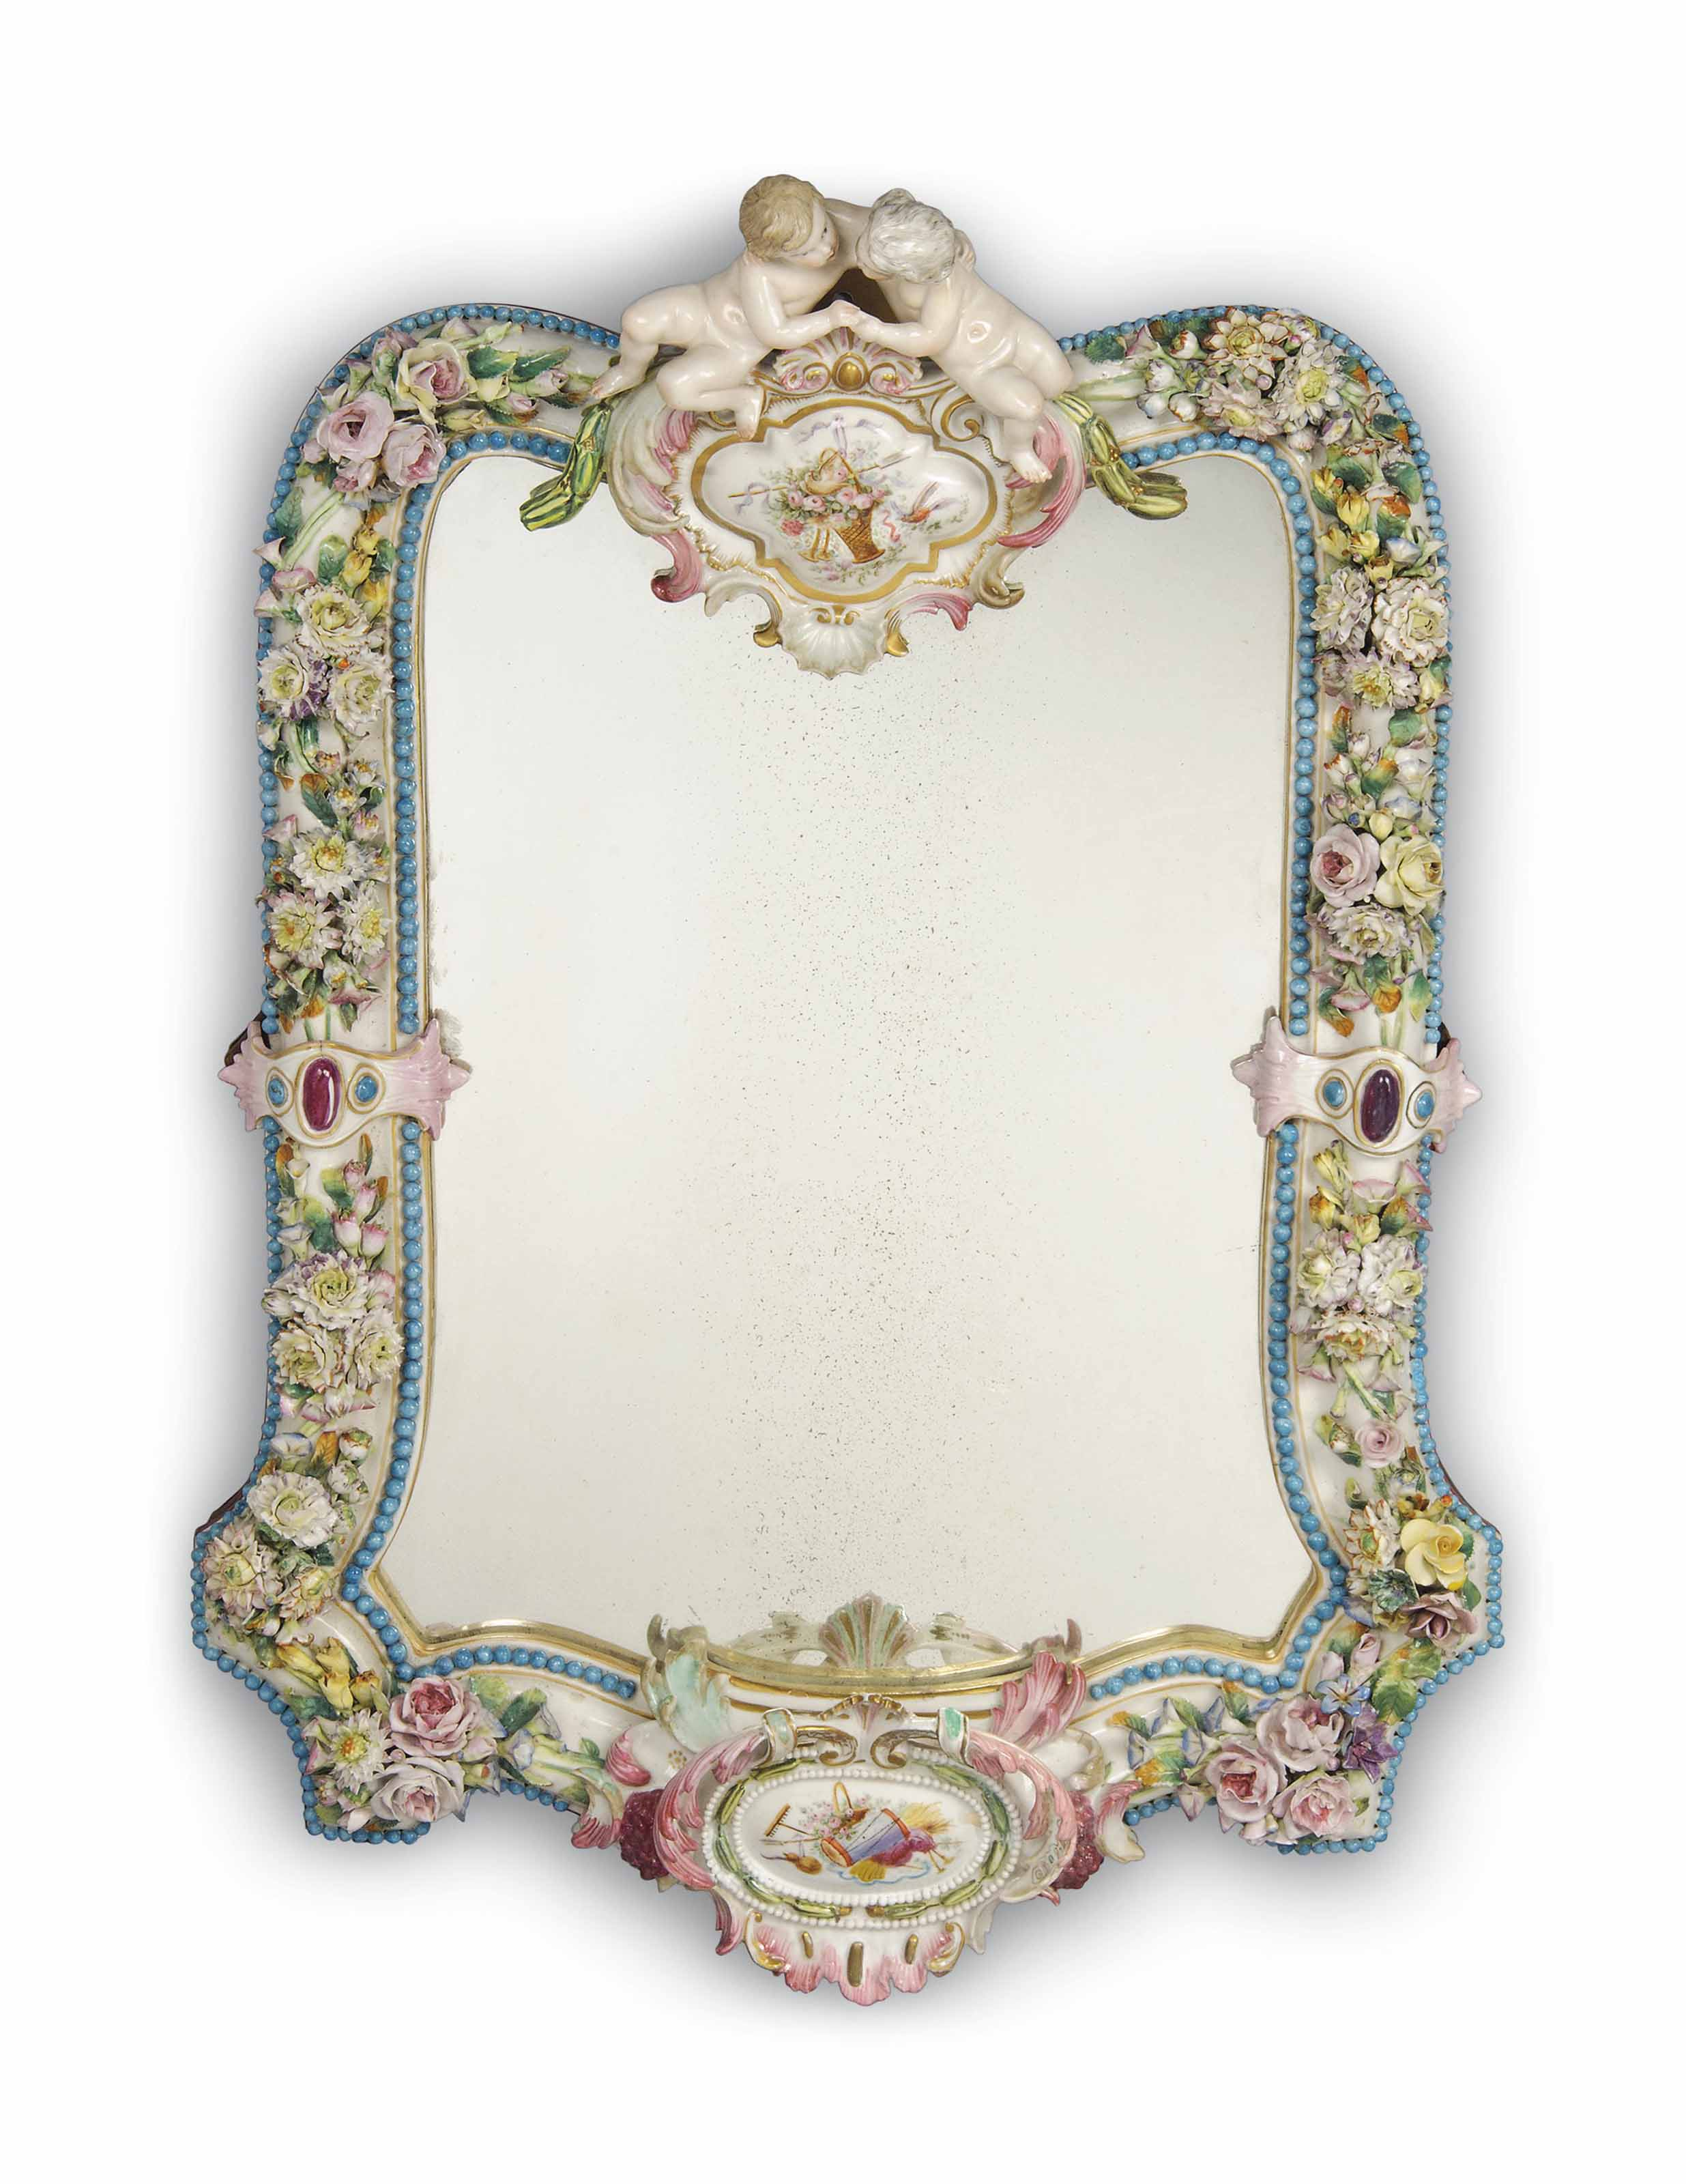 A GERMAN PORCELAIN FLOWER-ENCRUSTED MIRROR FRAME